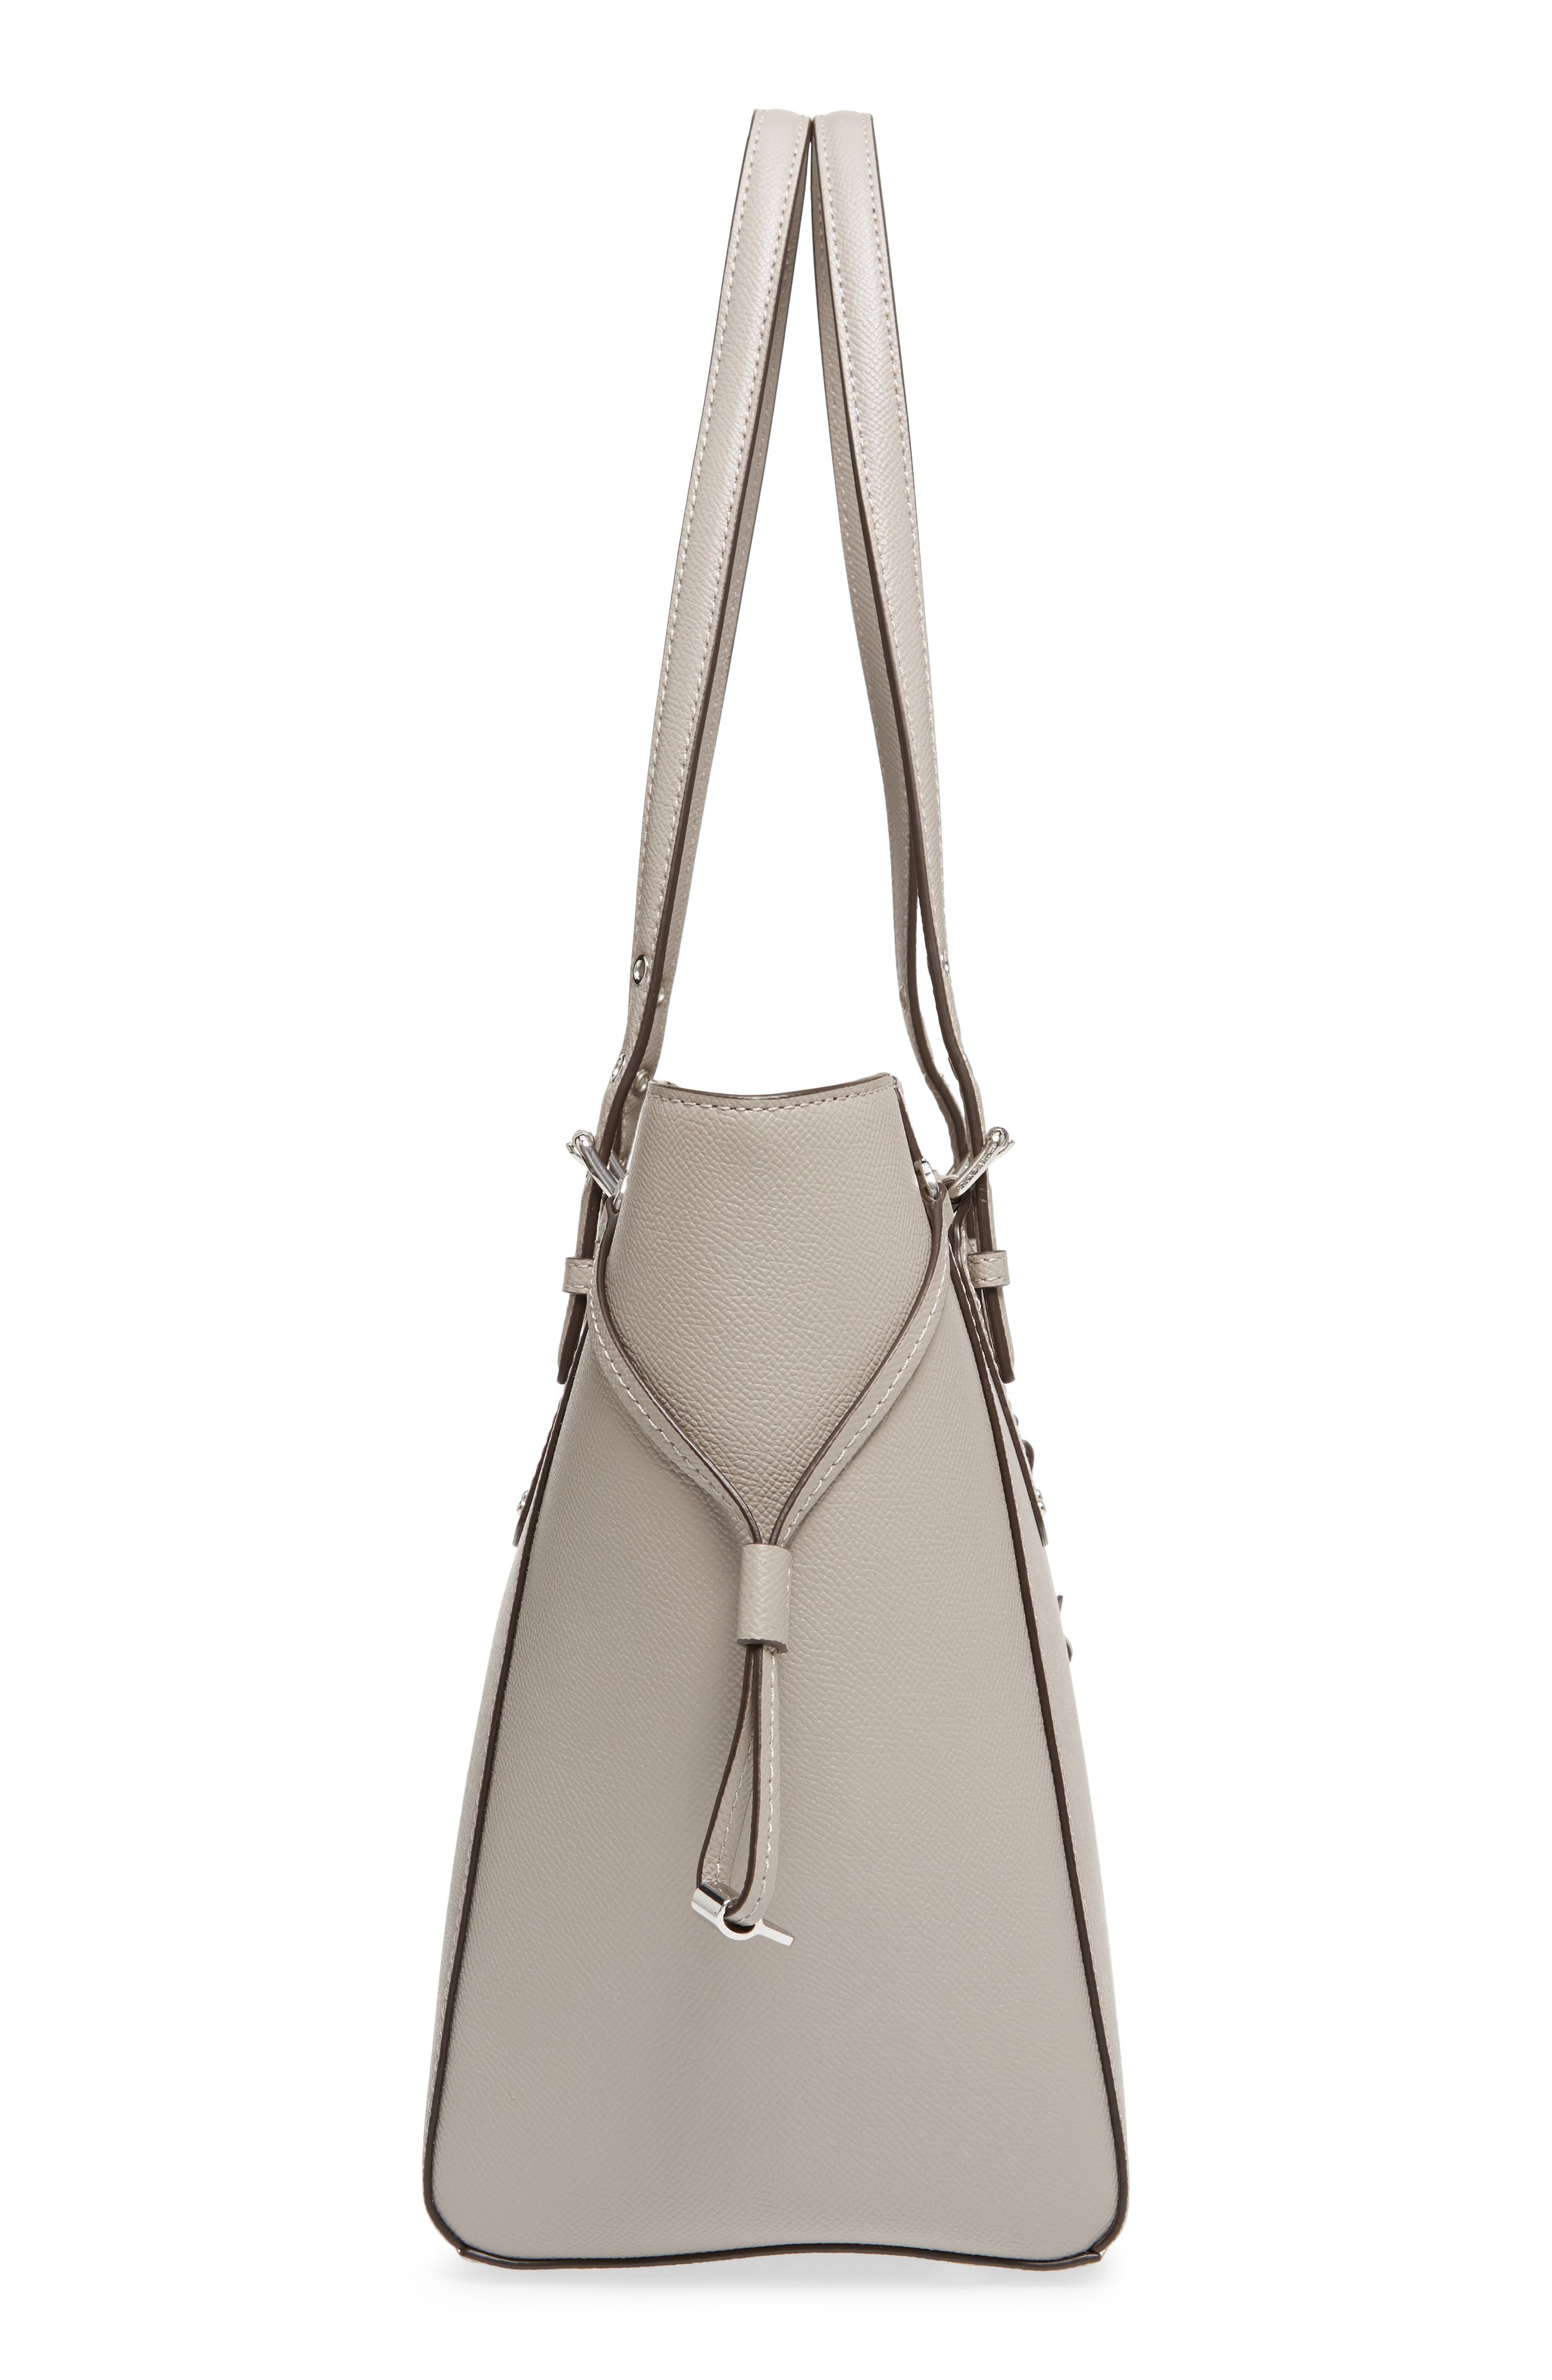 MICHAEL Michael Kors Voyager Leather Tote,                             Alternate thumbnail 5, color,                             Pearl Grey